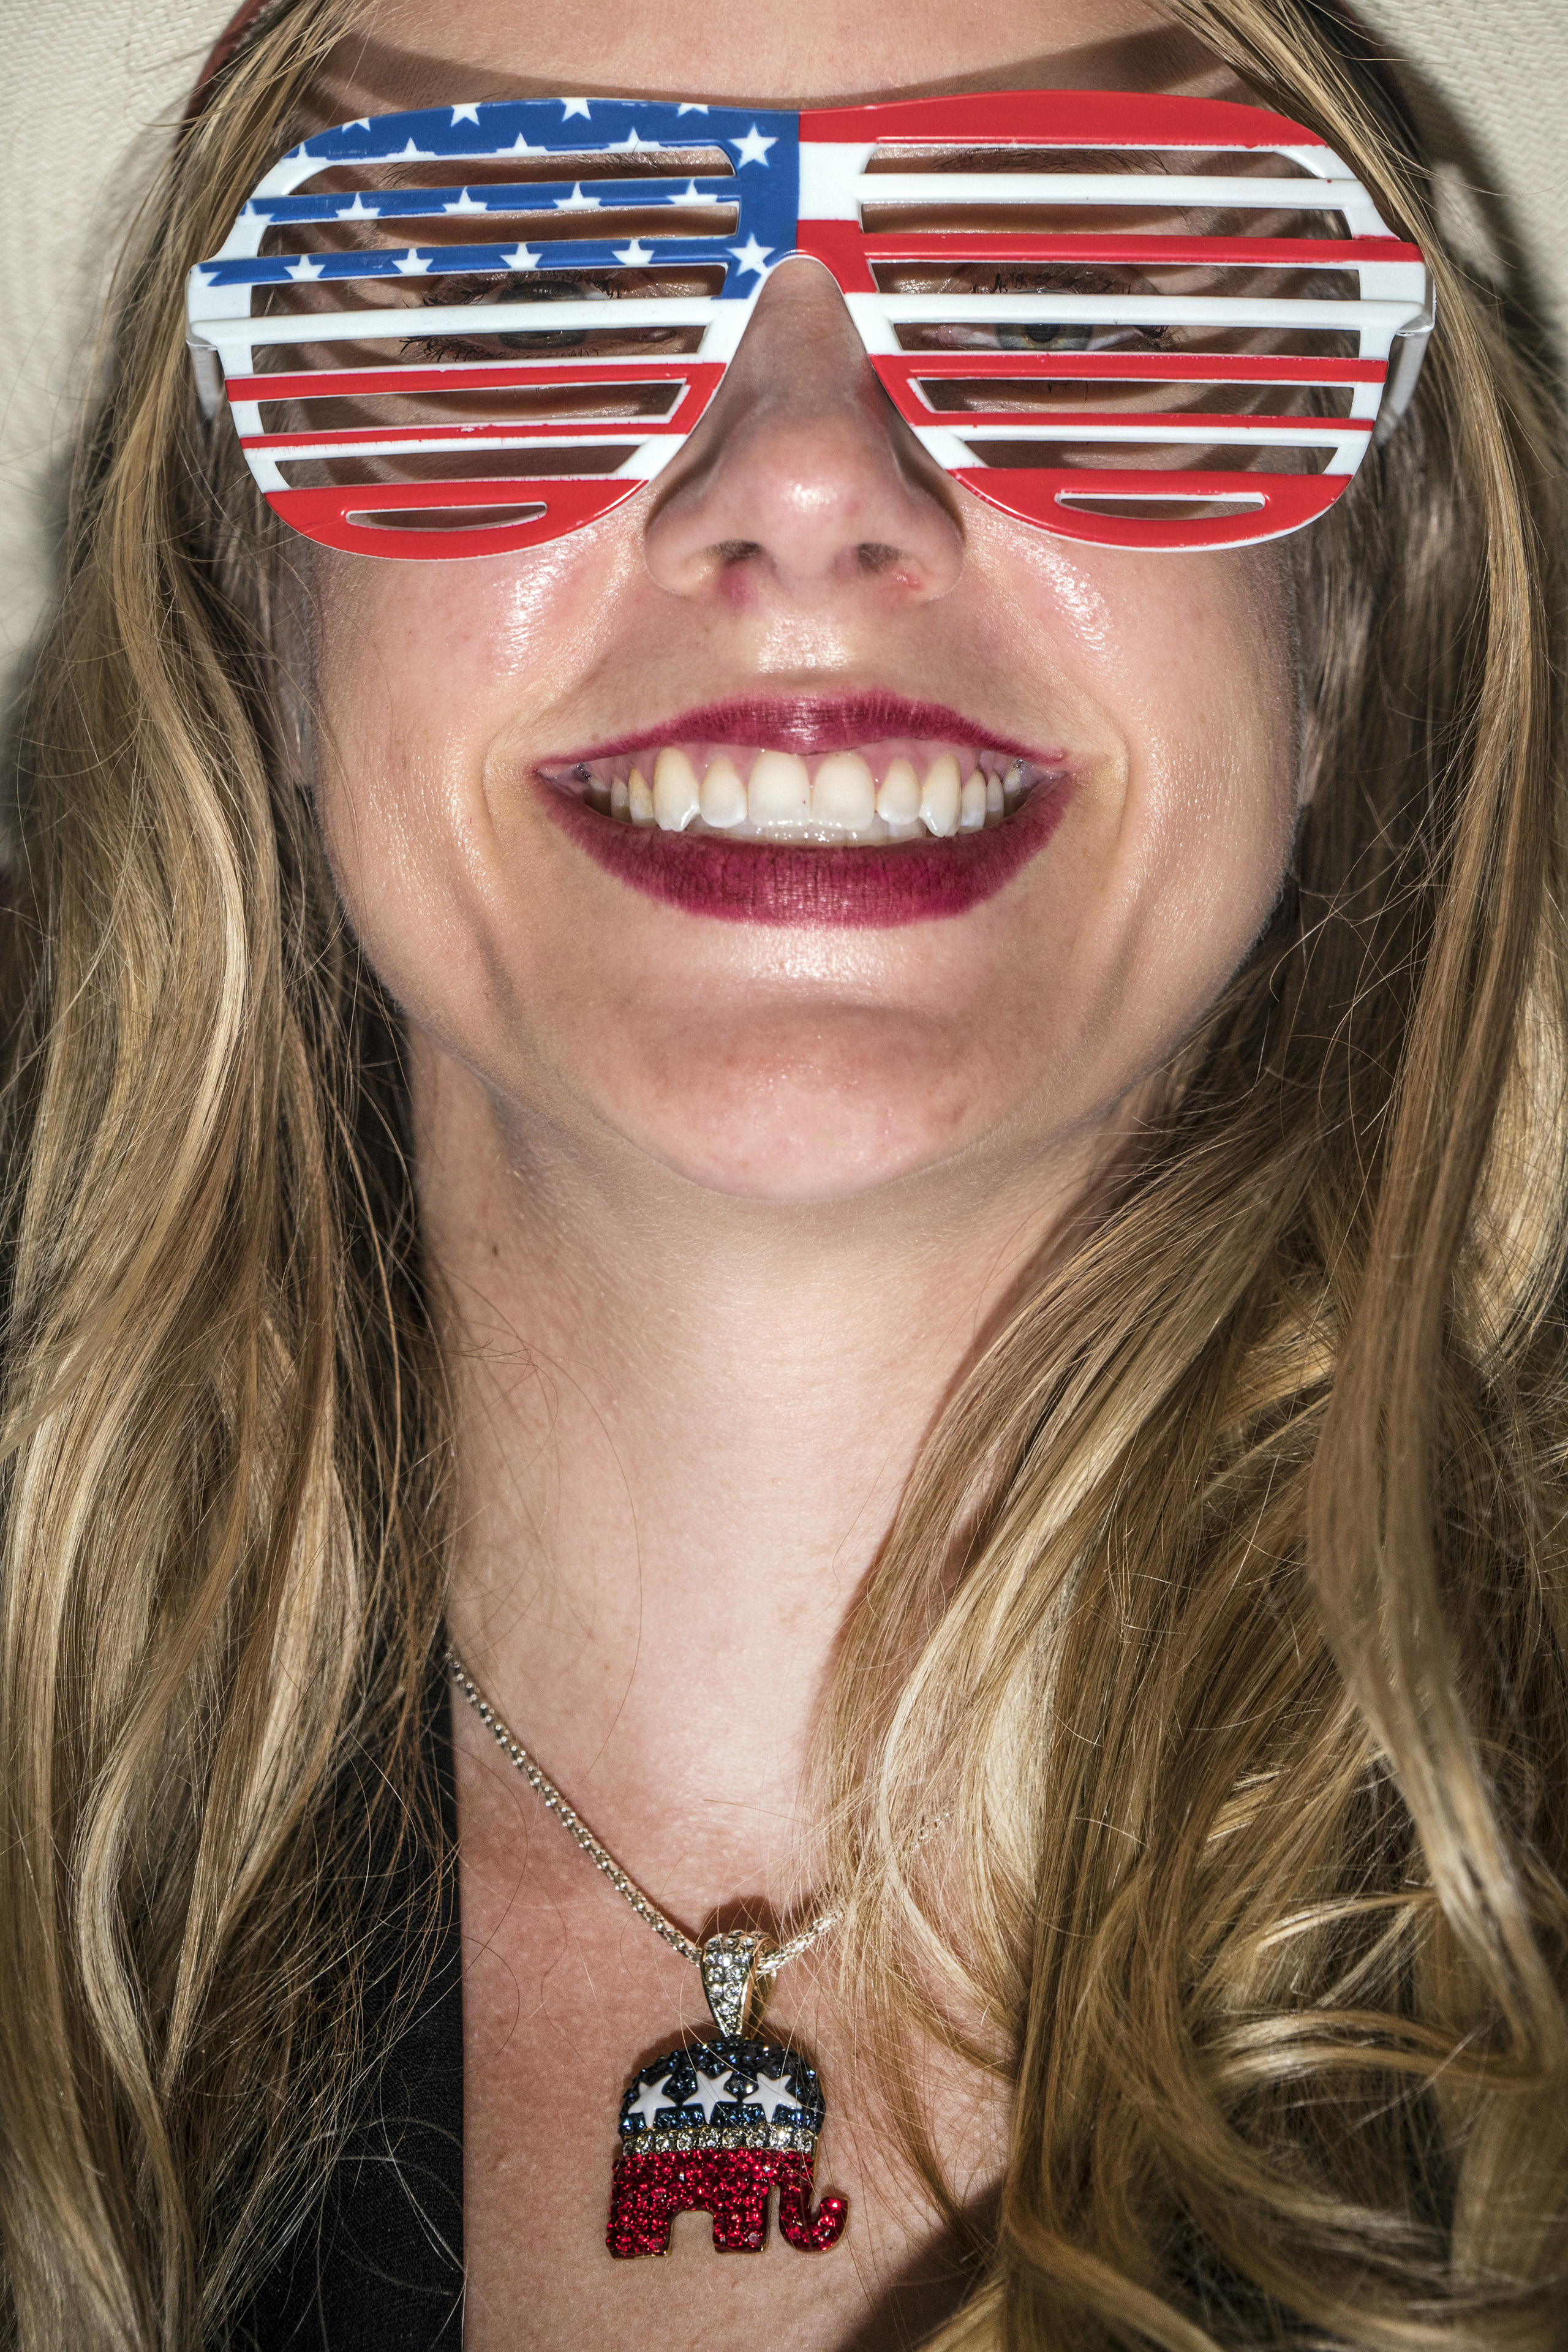 Patriotic glasses on a Trump supporter at the Republican National Convention on July 22, 2016, at the Quicken Loans Arena in Cleveland, Ohio.